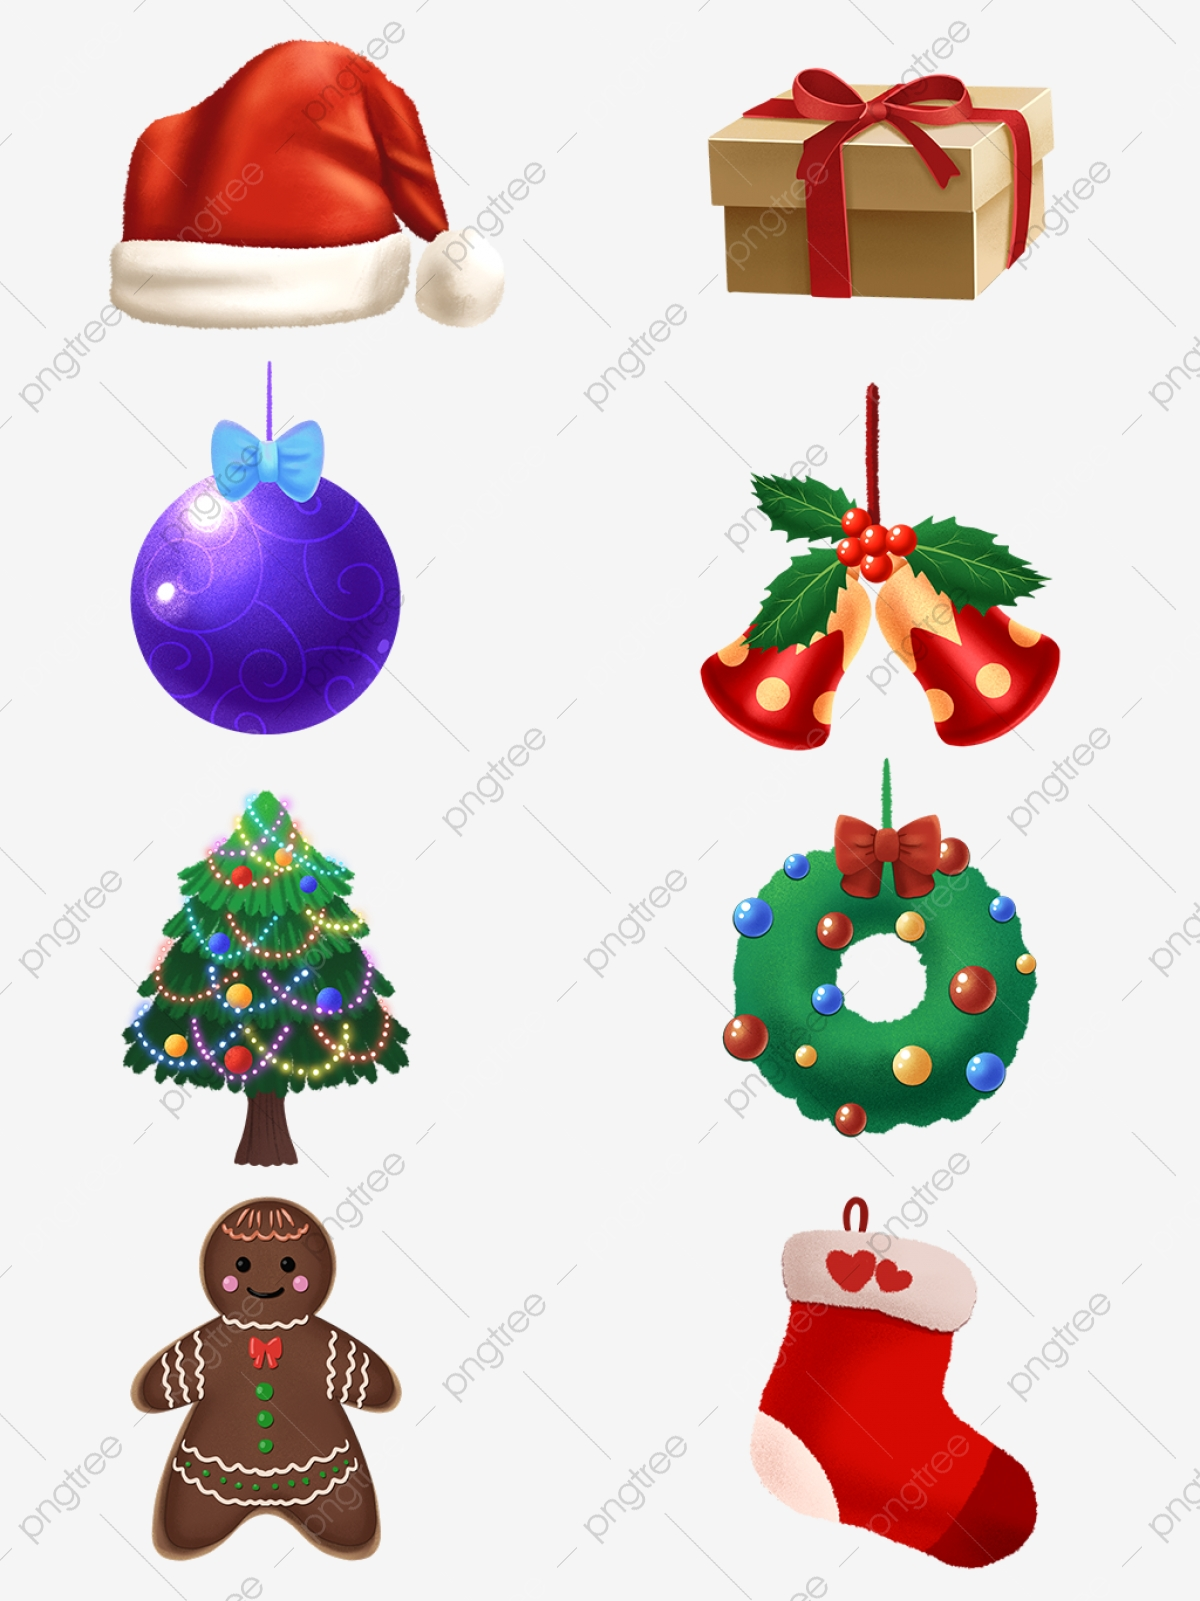 Cute Christmas Decoration Cartoon Transparent Material Collection Red Yellow White Png Transparent Clipart Image And Psd File For Free Download